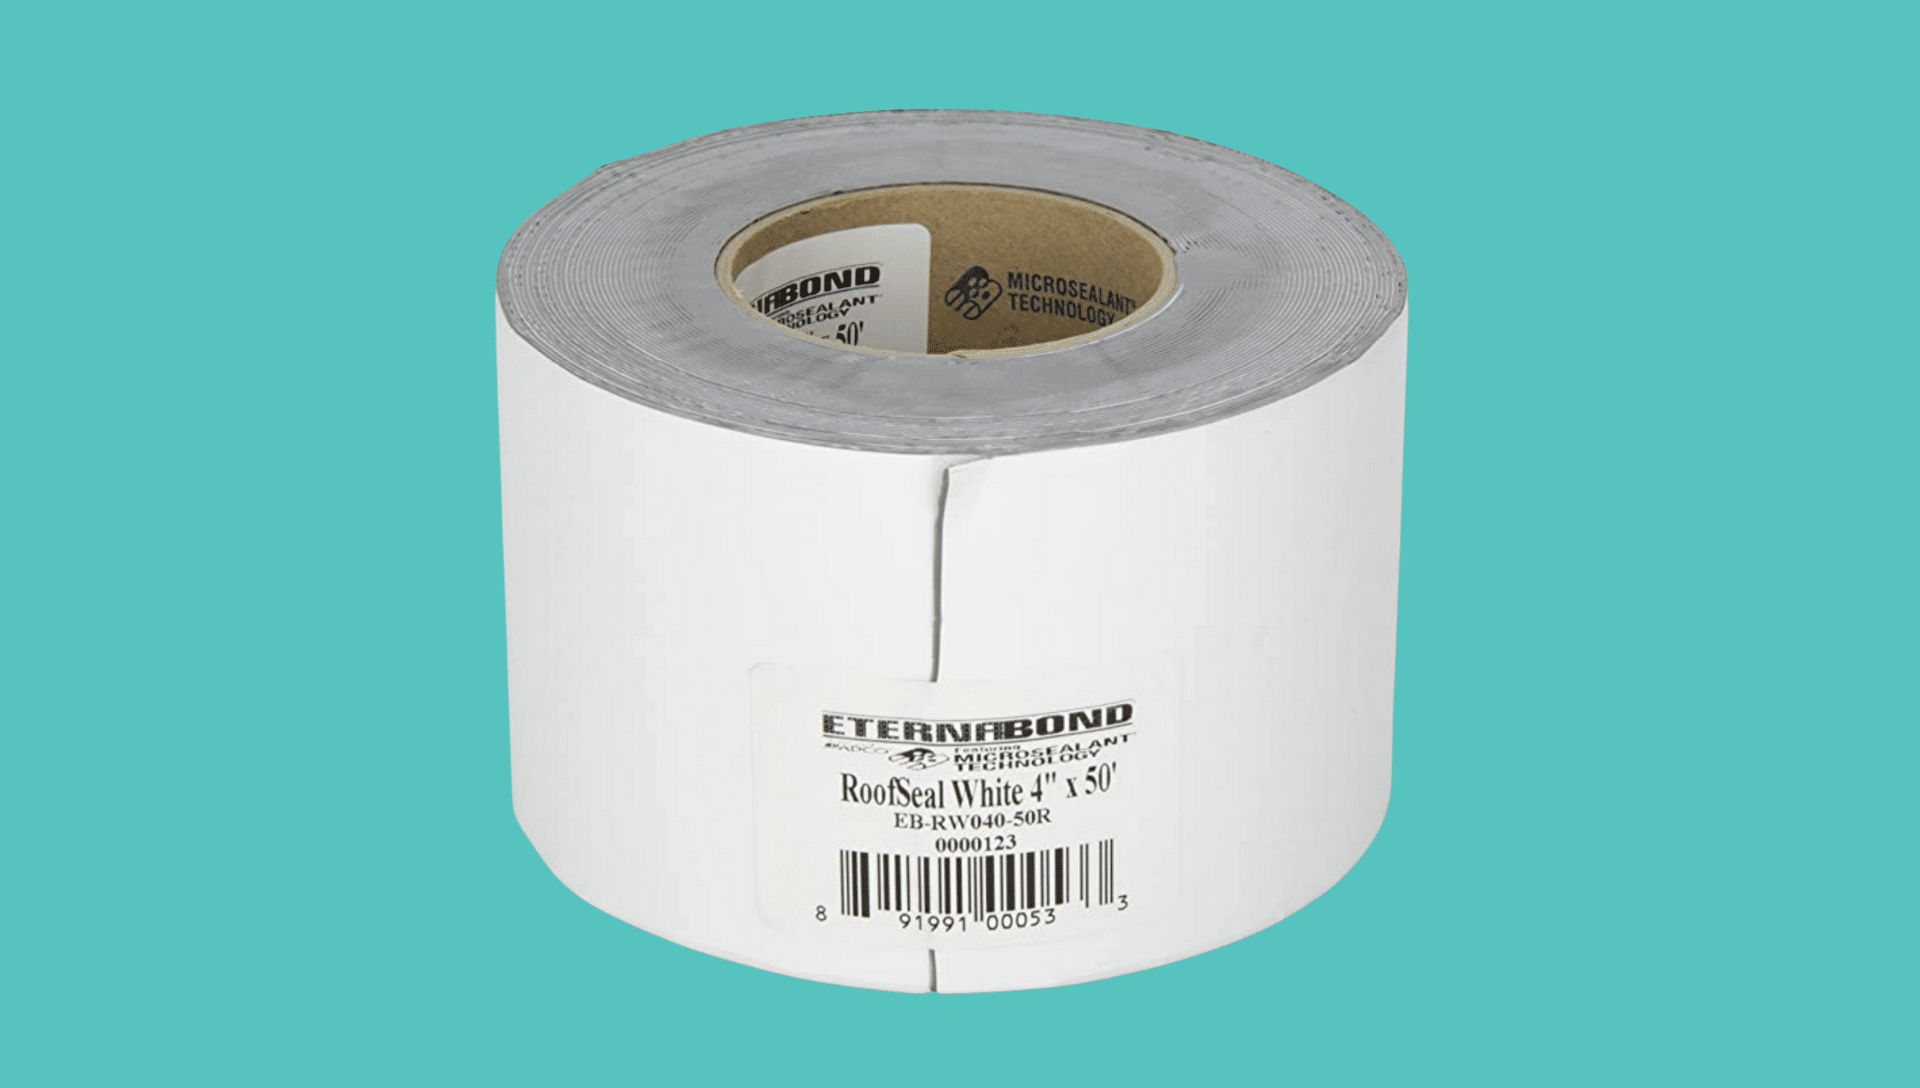 A roll of Eternabond RV tape.